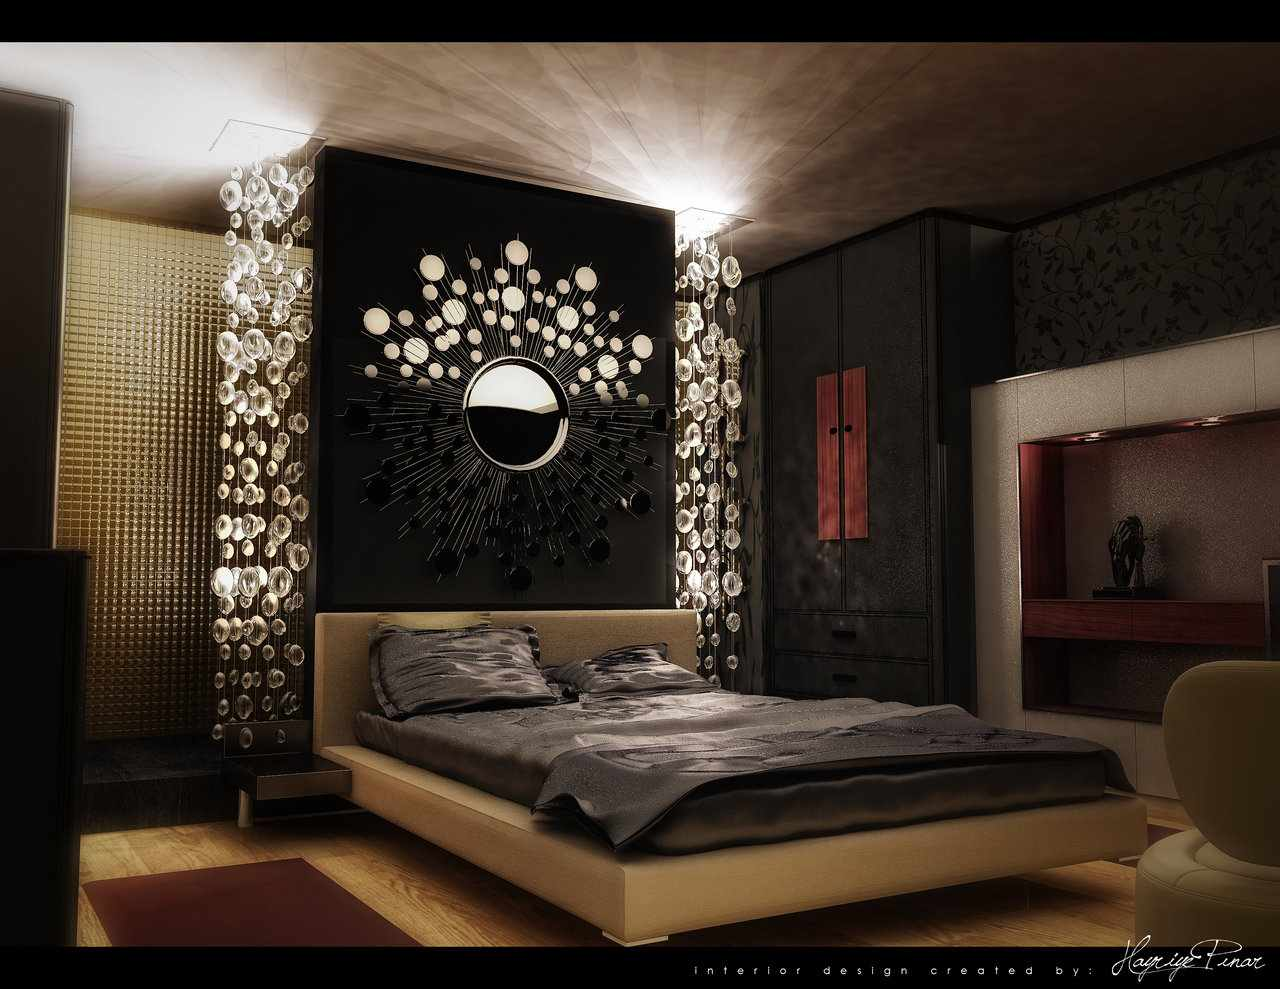 Ikea bedroom ideas ikea bedroom 2014 ideas room design for Room designs bedroom